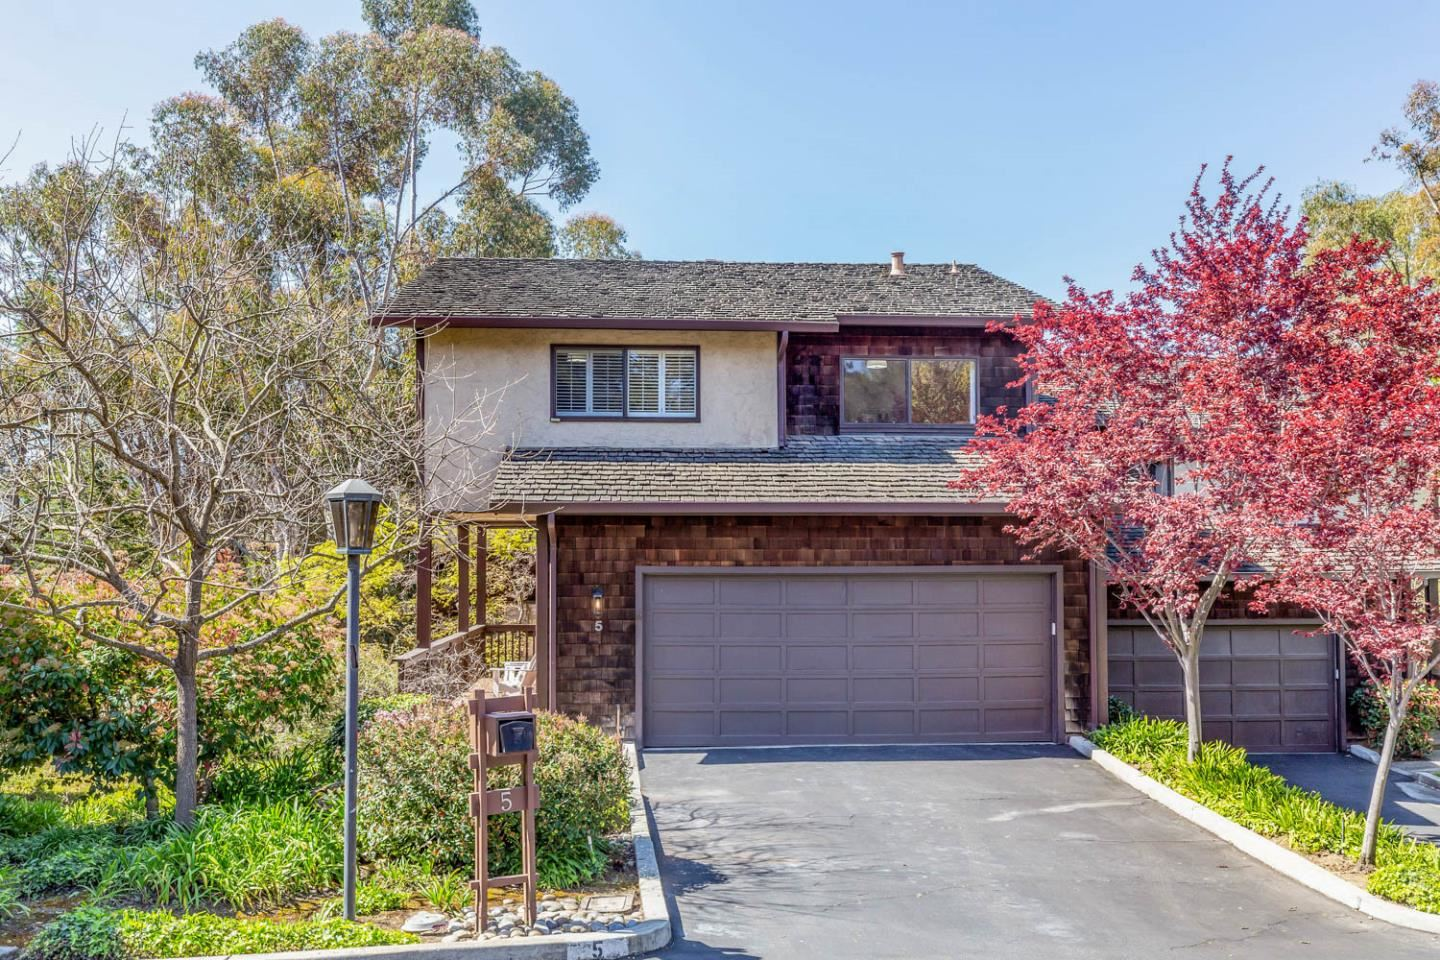 Photo for 5 Carriage CT, MENLO PARK, CA 94025 (MLS # ML81836766)